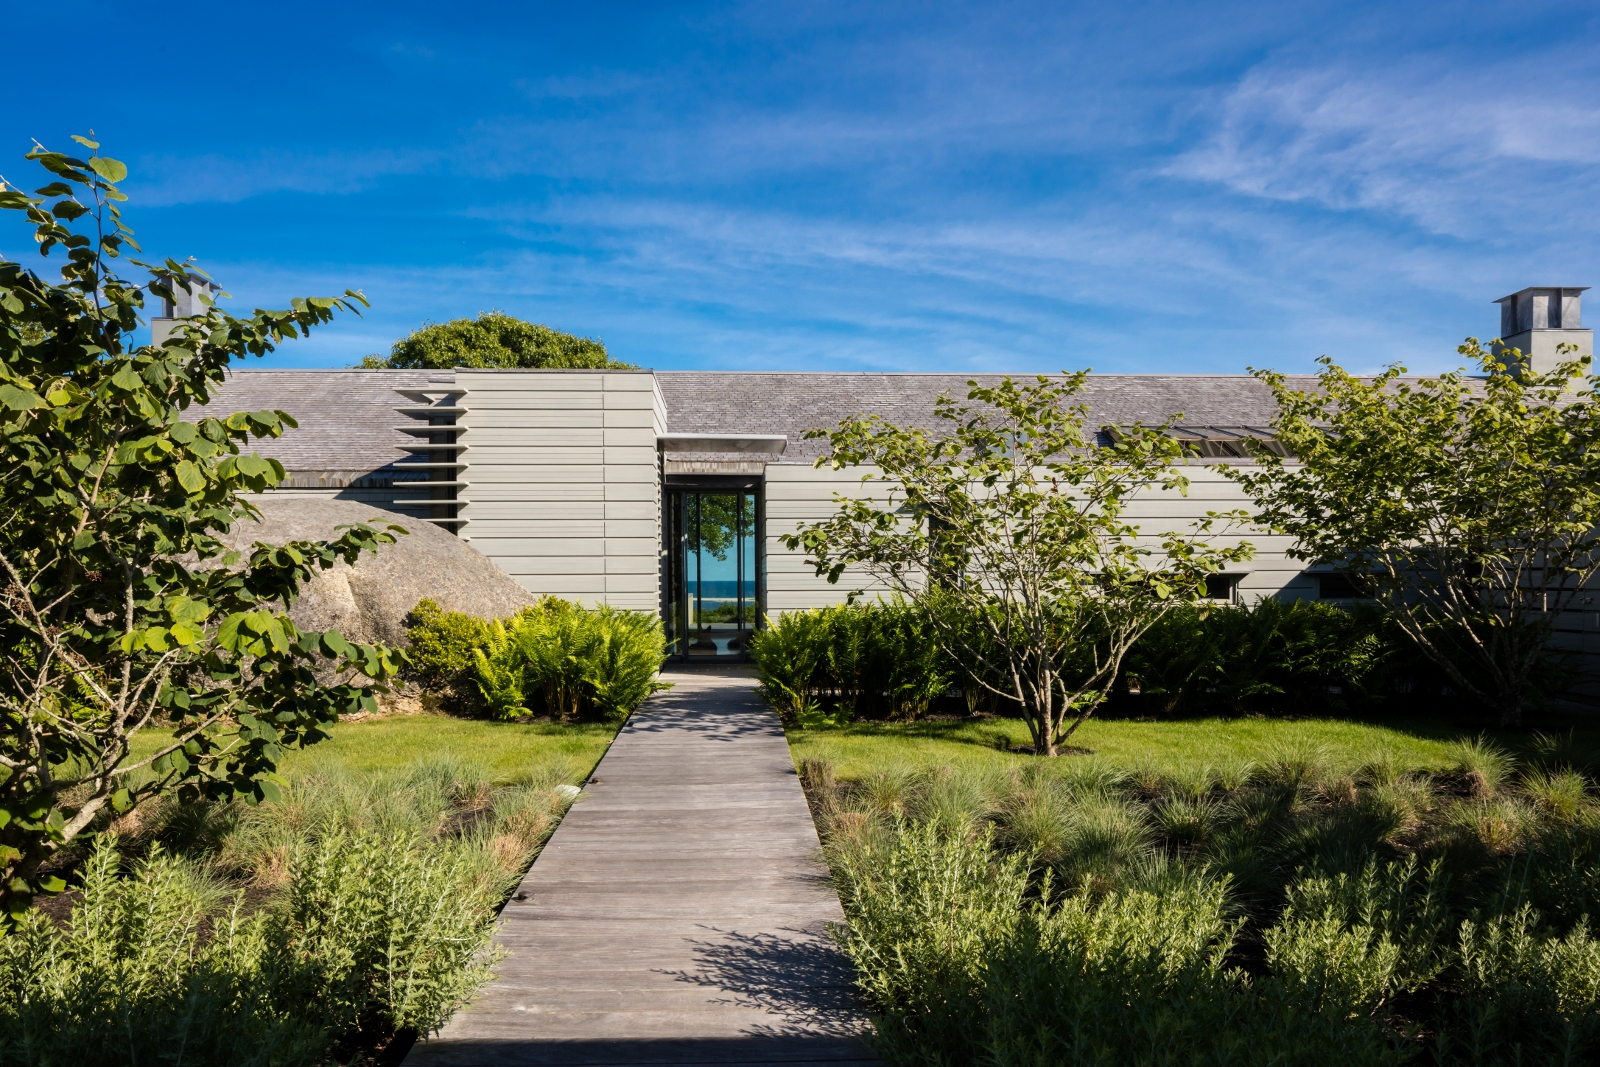 Single Family Home for Sale at Spectacular Estate with Private Beach 8 Snail Road Chilmark, Massachusetts, 02535 United States